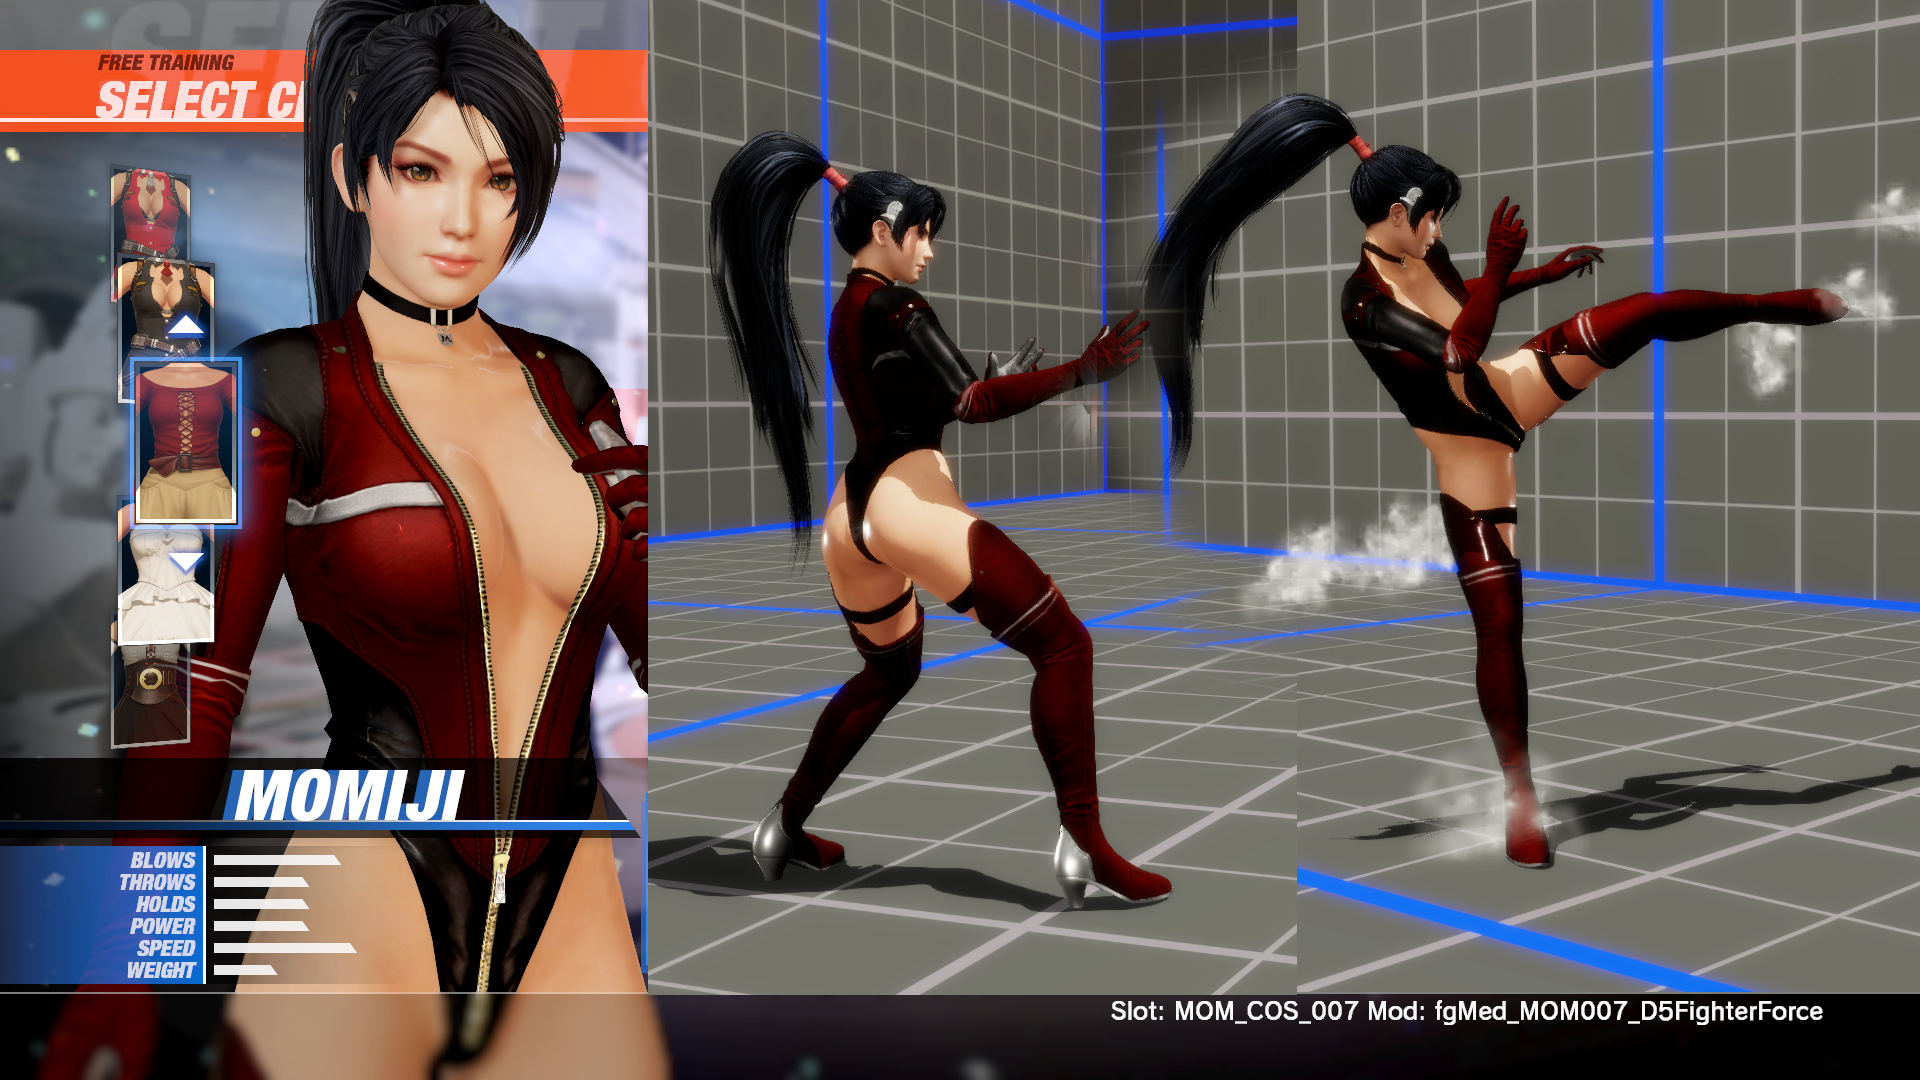 Momiji simplified Fighter Force Suit from DOA5